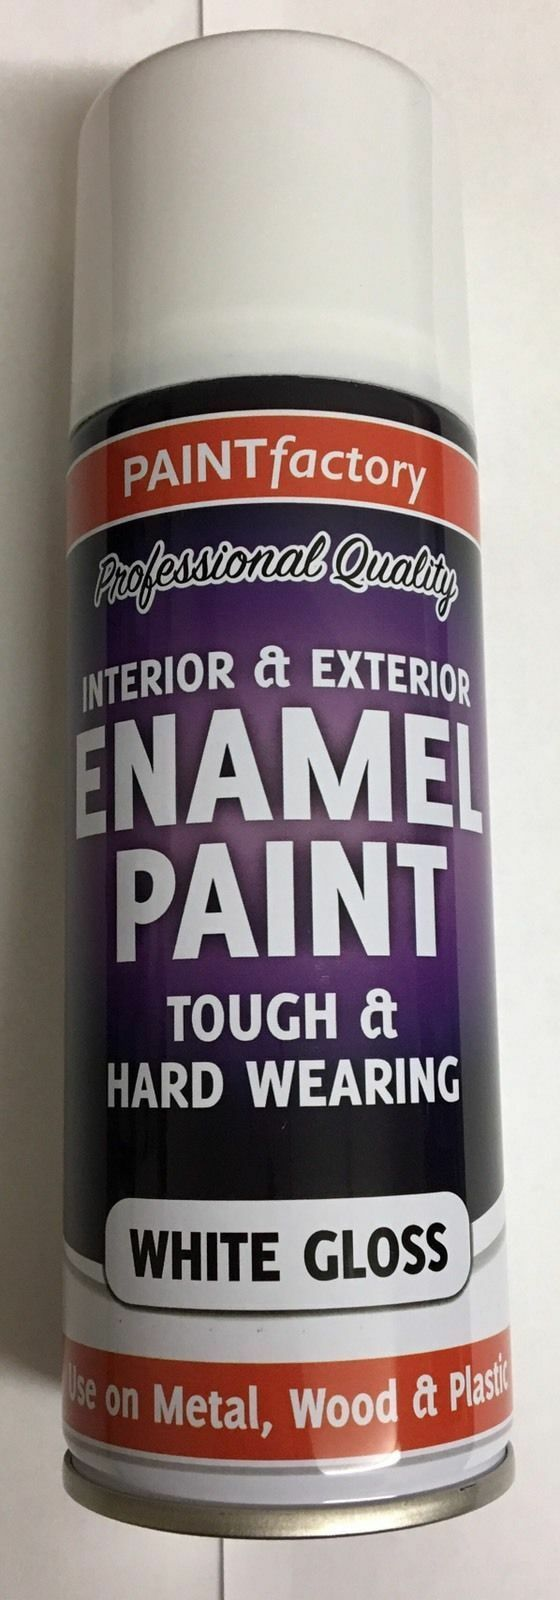 10x Enamel White Gloss Paint Spray Aerosol 400ml Radiator Metal Wood Etc. Tough